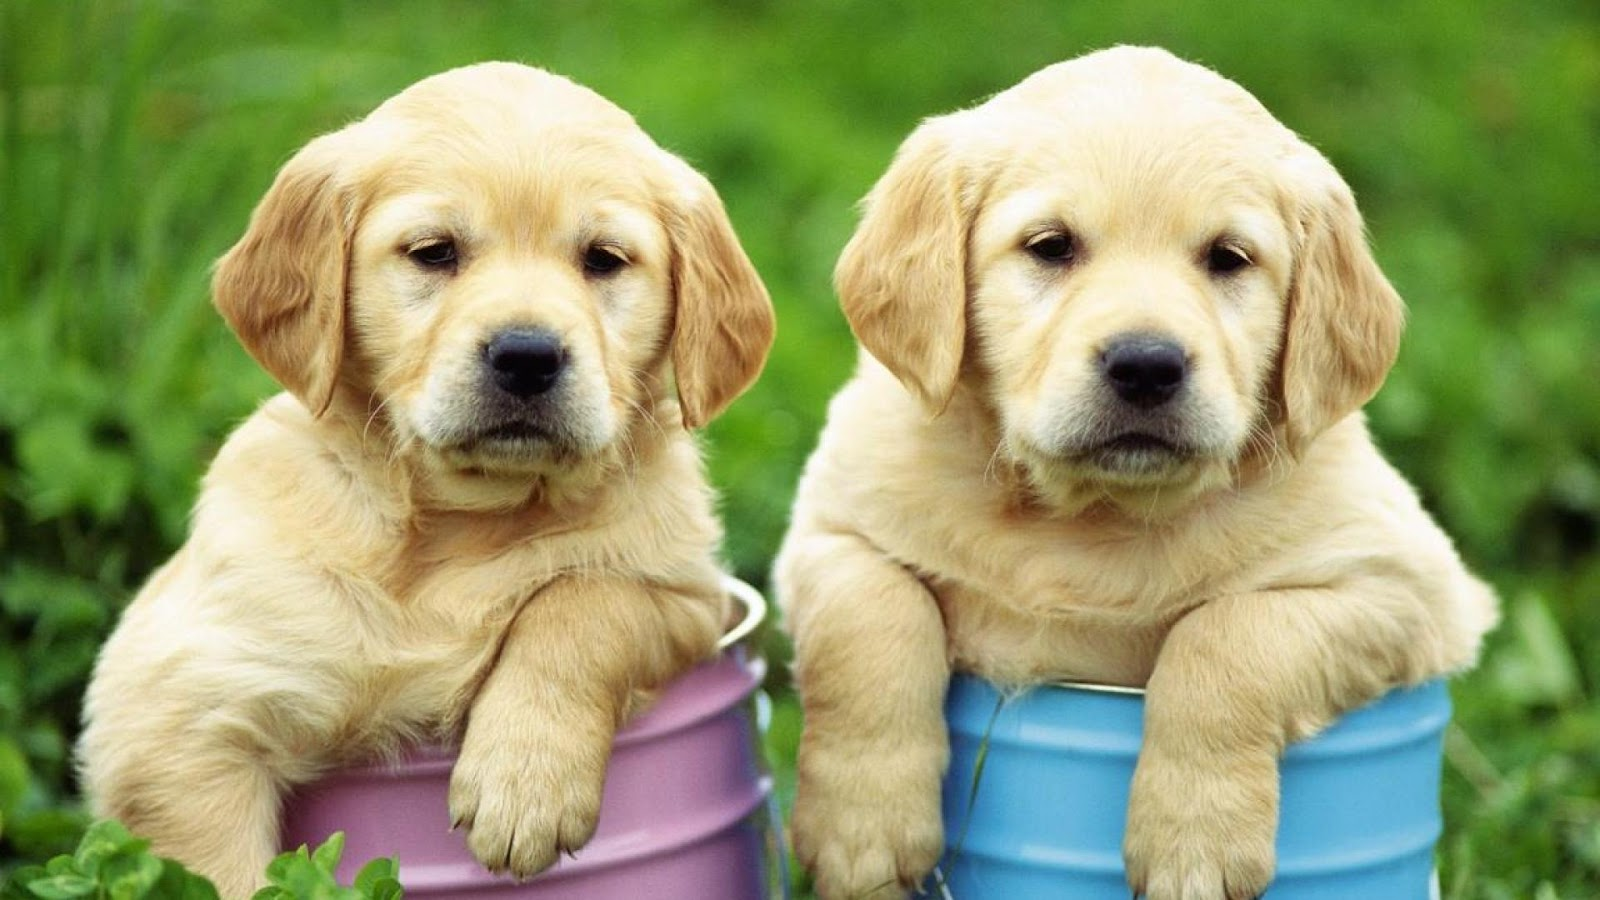 Is a Labrador Retriever the Right Dog Breed for You?